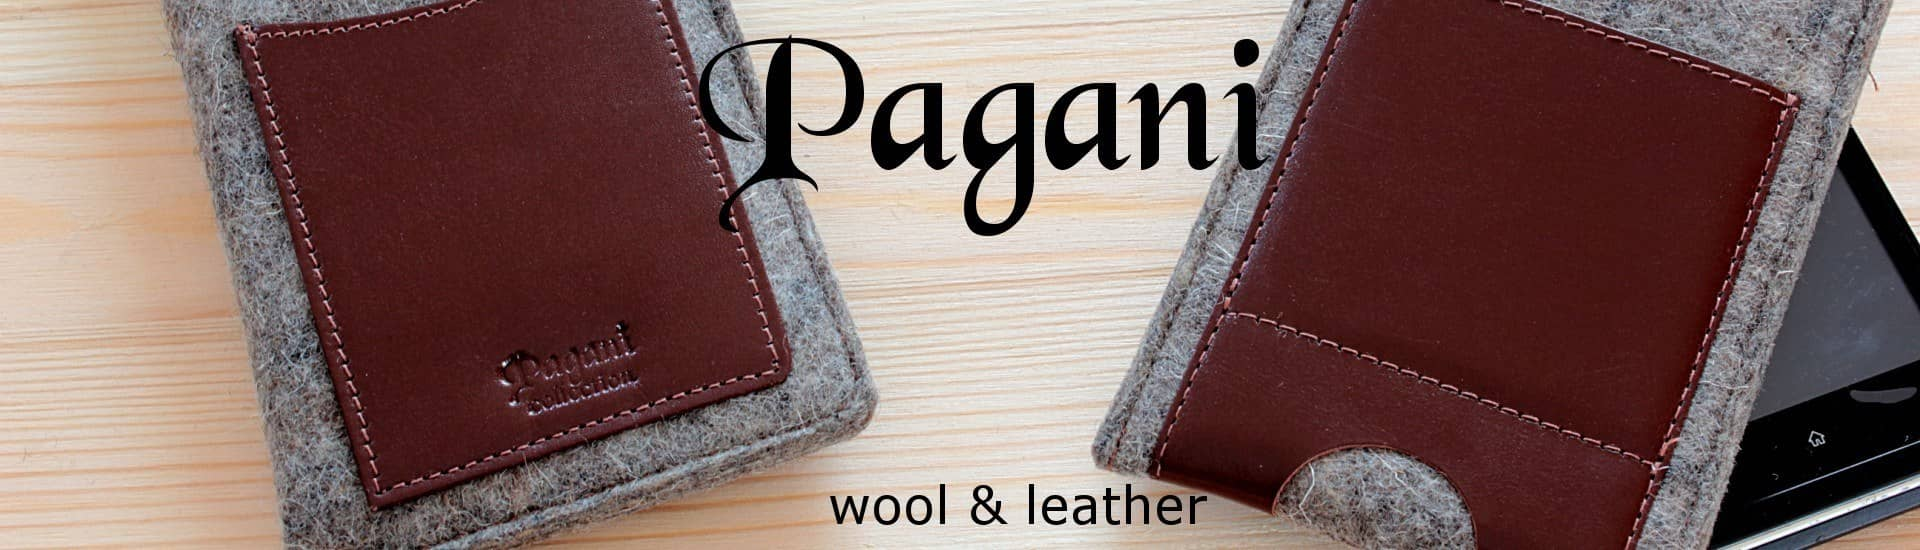 Pagani collection - wool & leather